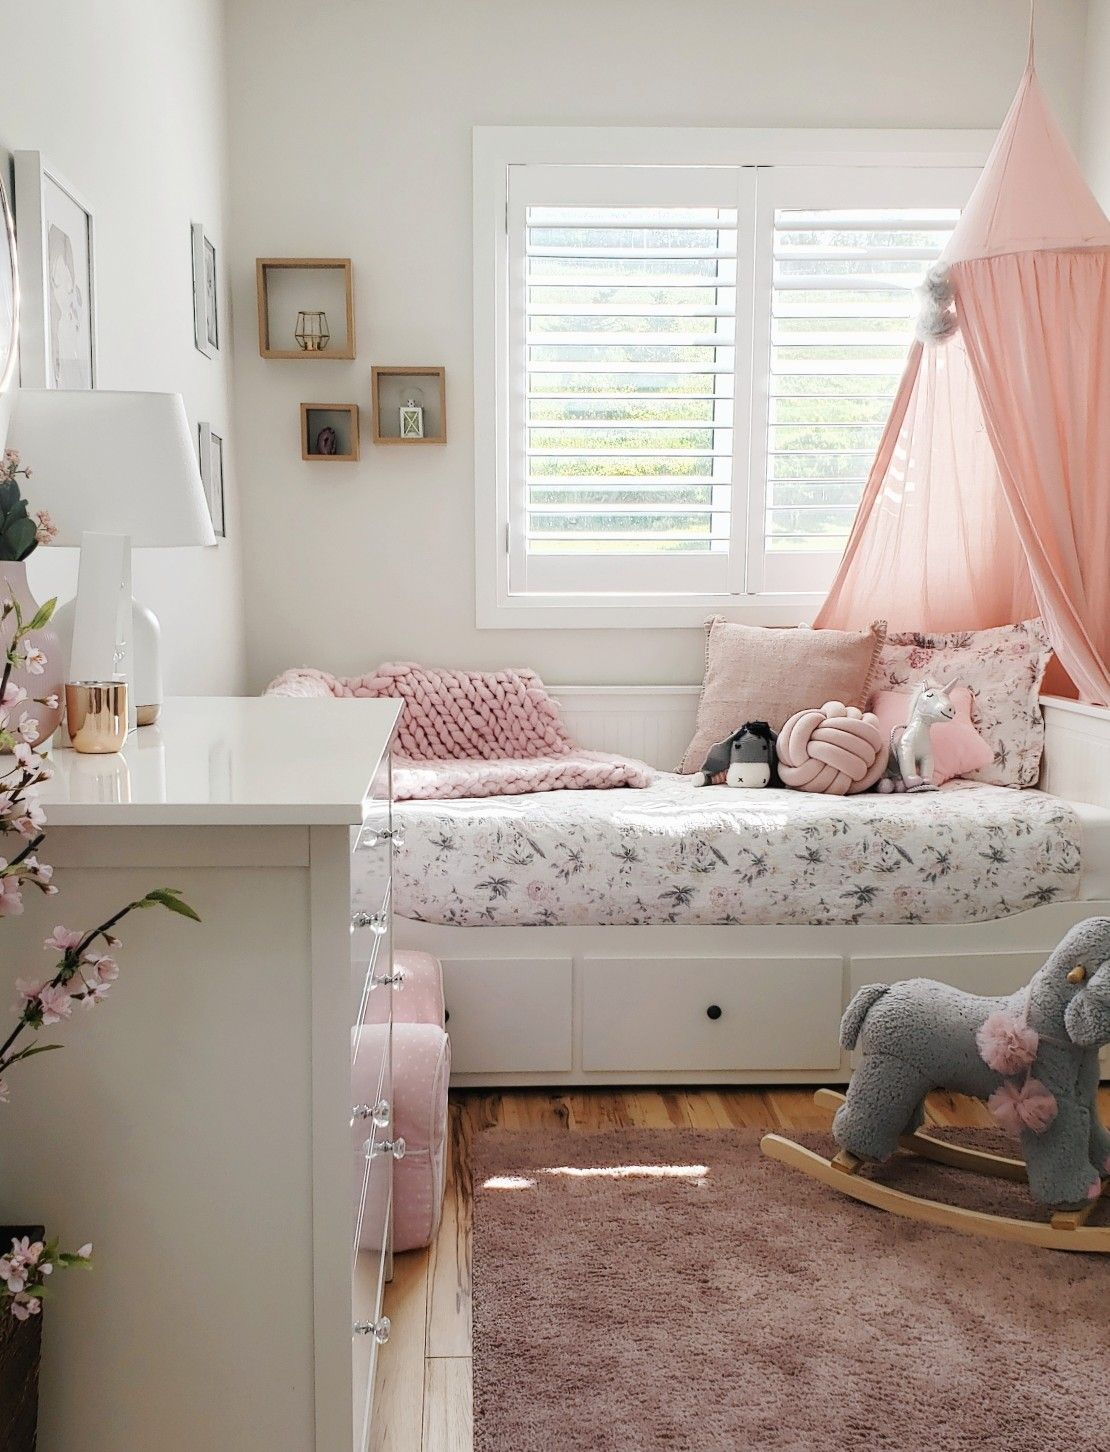 Toddler Bedroom Ikea Day Bed Daybed Ideas Kid Room Daybed Girls Daybed Room Ikea Toddler Bed